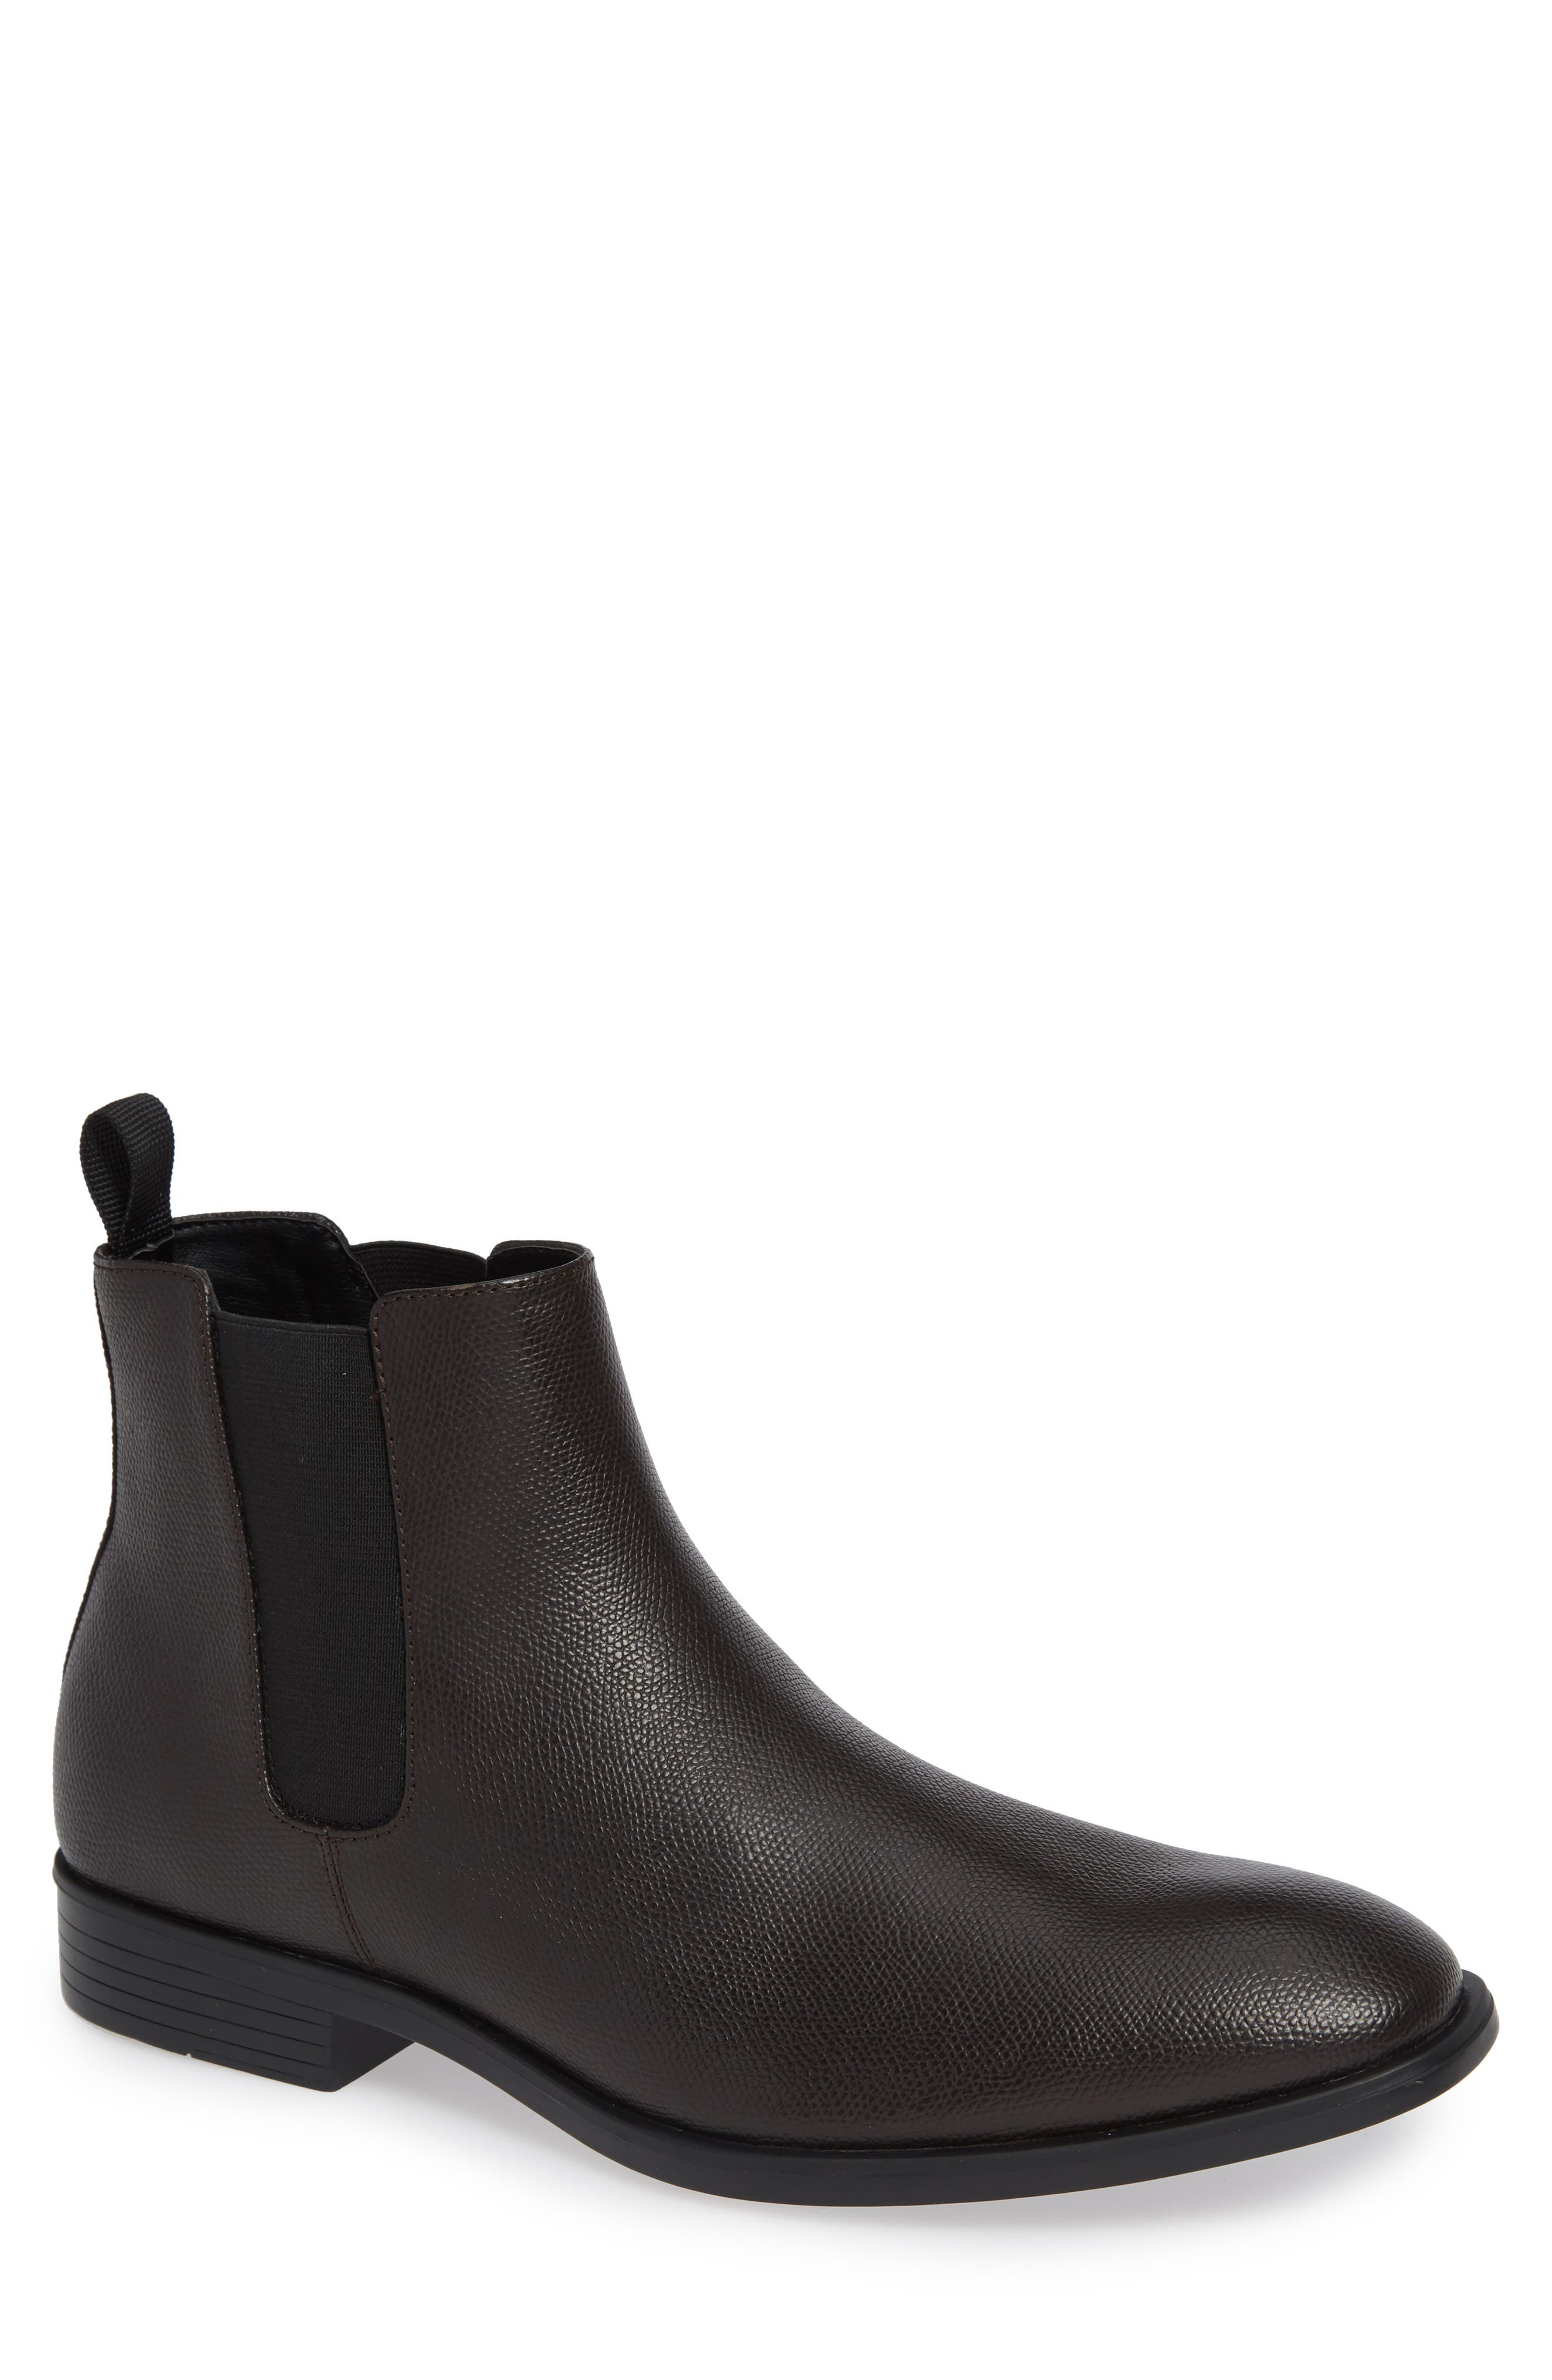 Corin Chelsea Boot,                         Main,                         color, DARK BROWN LEATHER